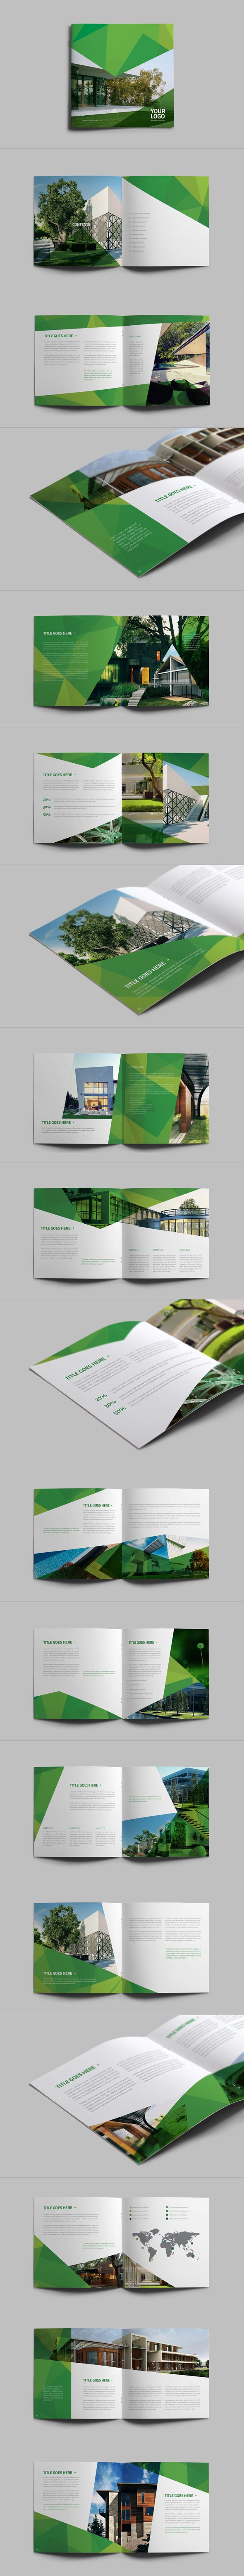 Abstract Ecologic Brochure. Download here: http://graphicriver.net/item/abstract-ecologic-brochure/7765796?ref=abradesign #design #brochure